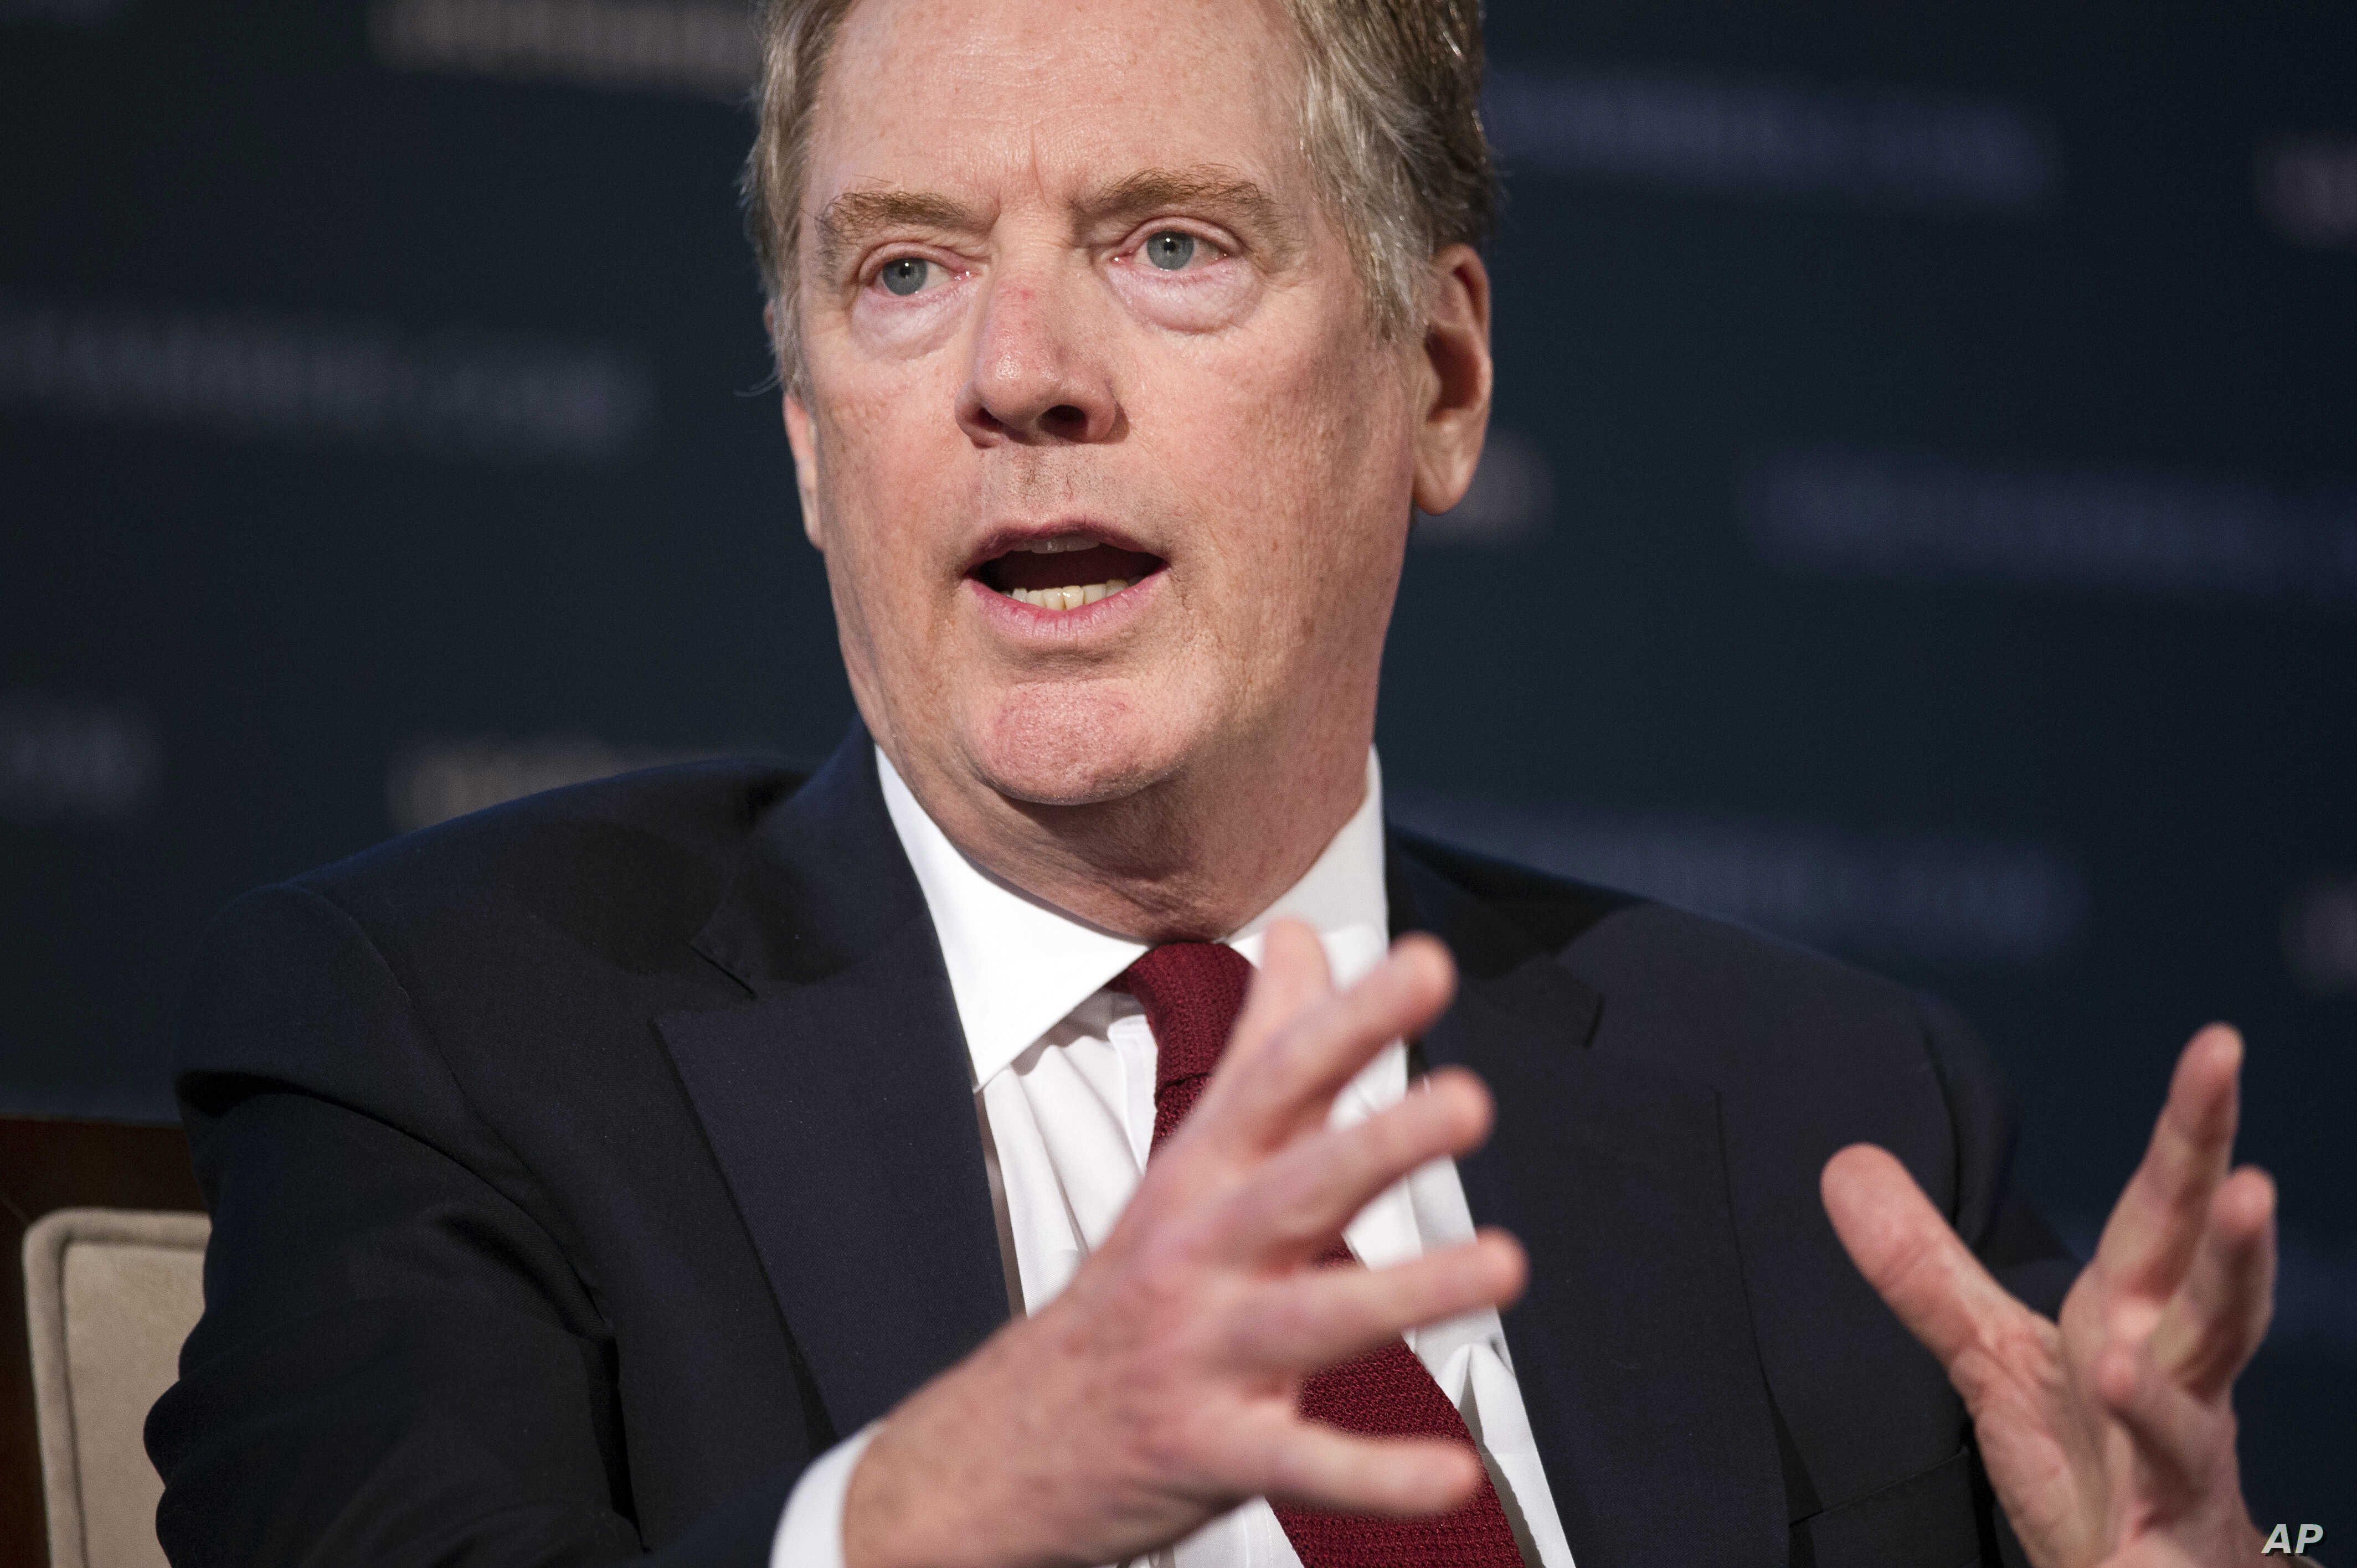 U.S. Trade Representative Robert Lighthizer speaks at the 9th China Business Conference at the U.S. Chamber of Commerce in Washington, May 1, 2018.